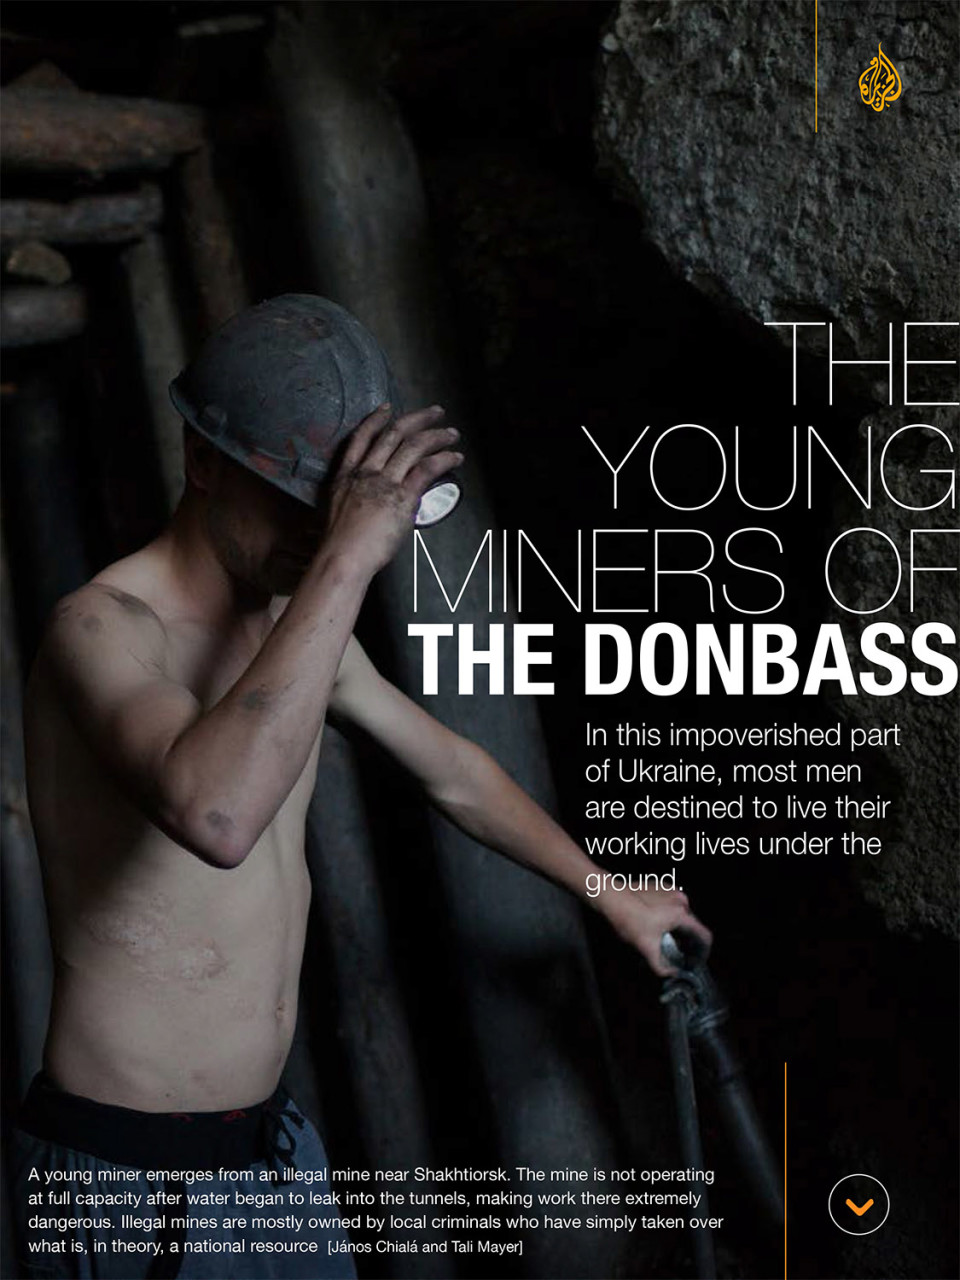 Al Jazeera English Magazine: Young miners of the Donbass. (January 2015) link to story